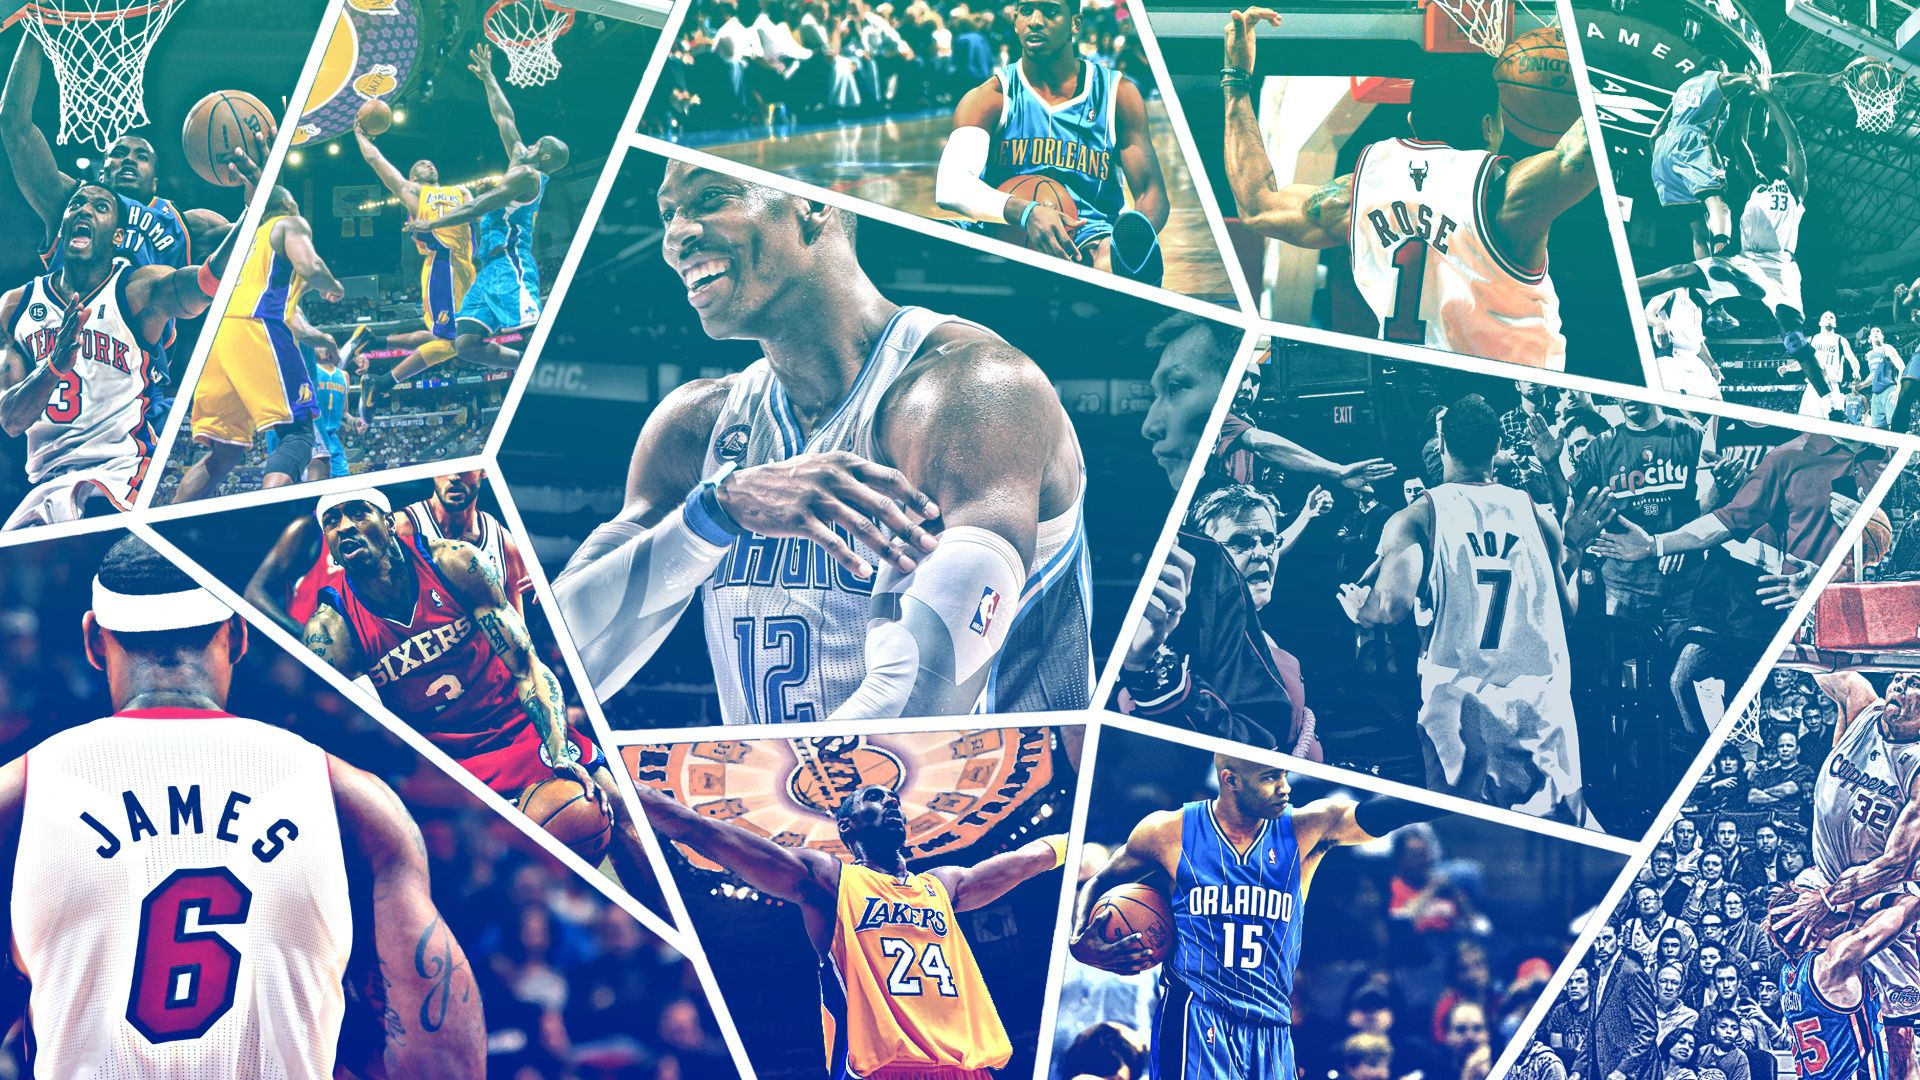 Hd wallpaper nba - Nba Basketball Wallpapers Of The Biggest Events And Best Players